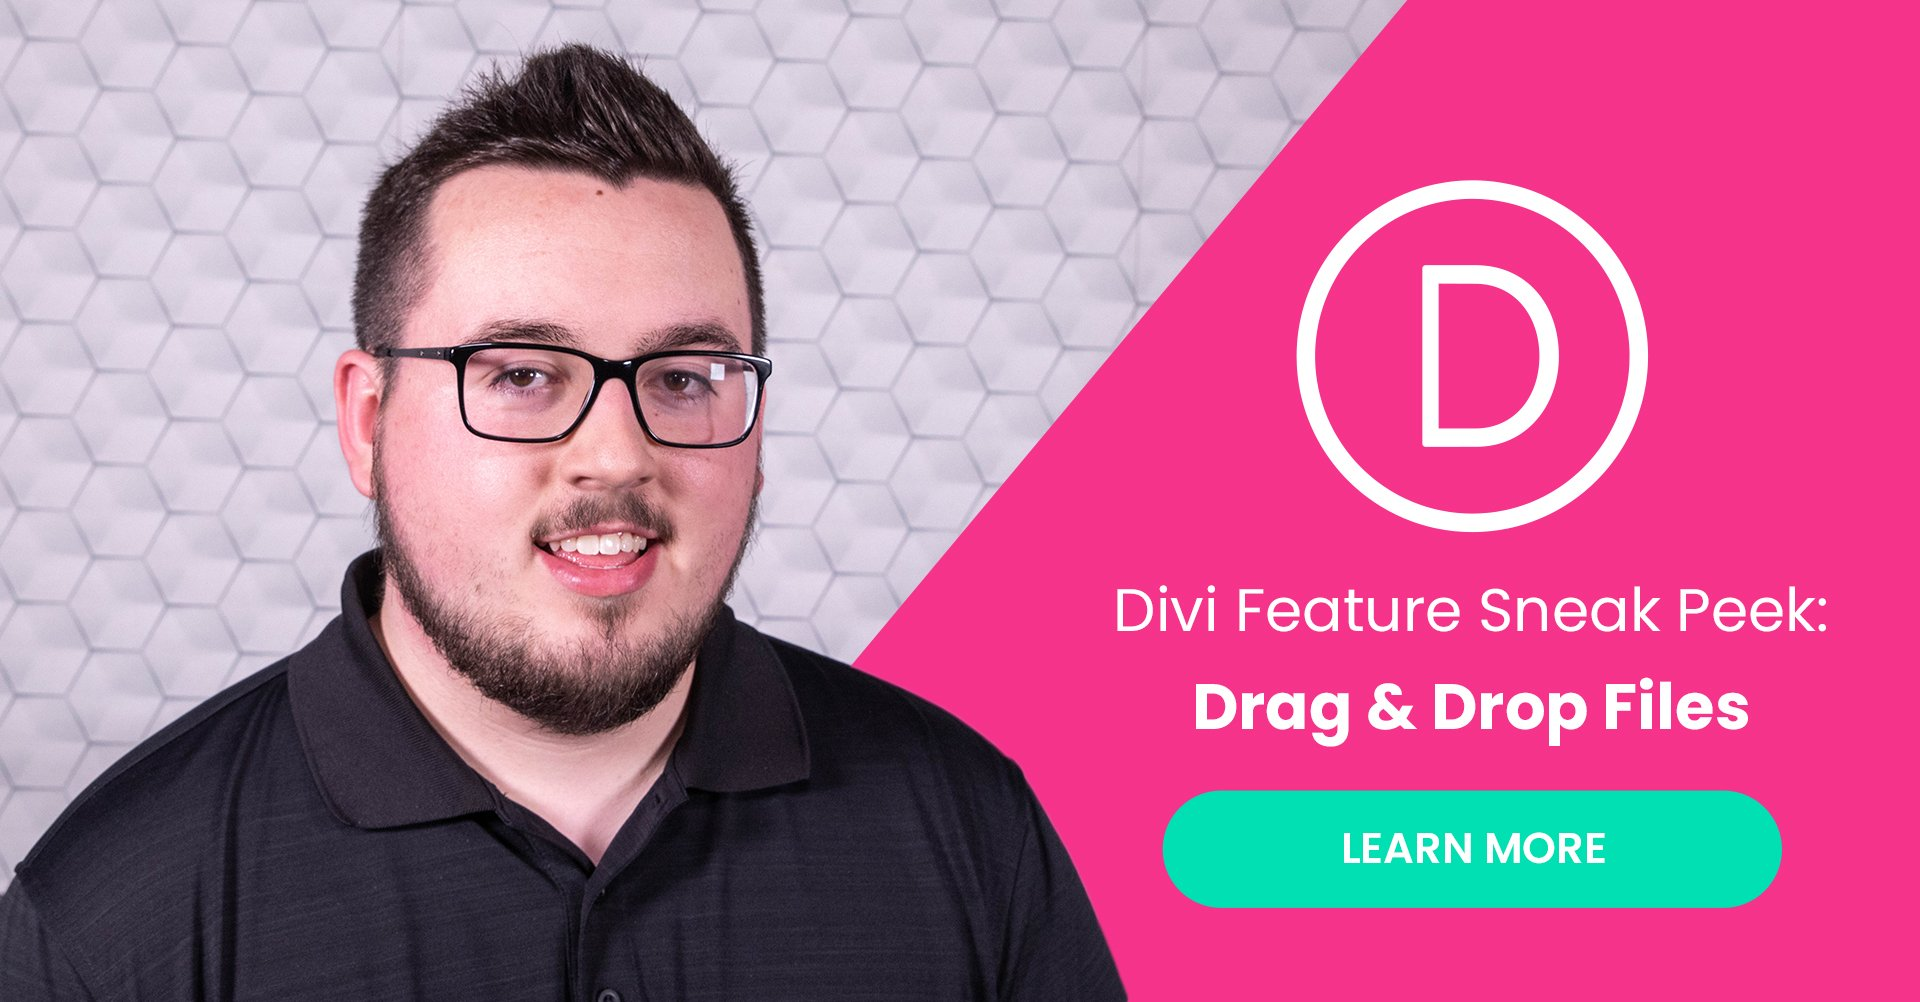 Divi Feature Sneak Peek: Drag & Drop Files